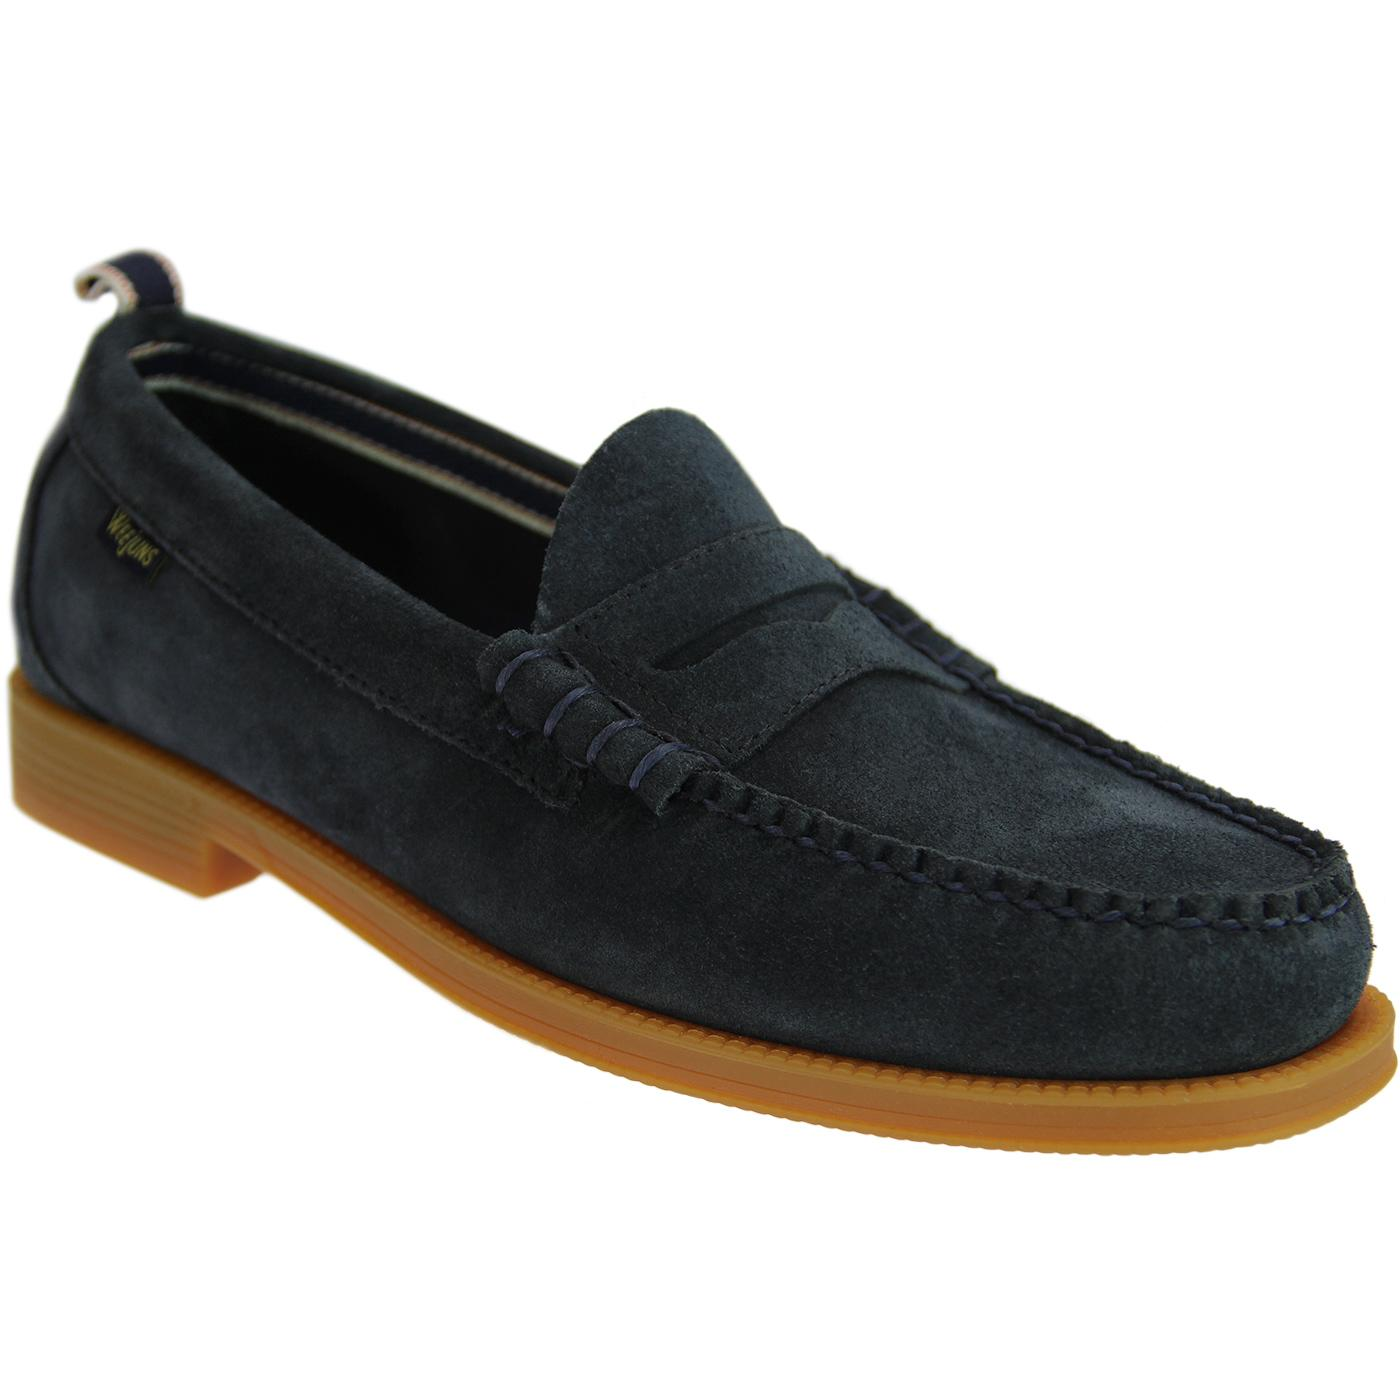 Larson Suede BASS WEEJUNS 60s Beef Roll Loafers N